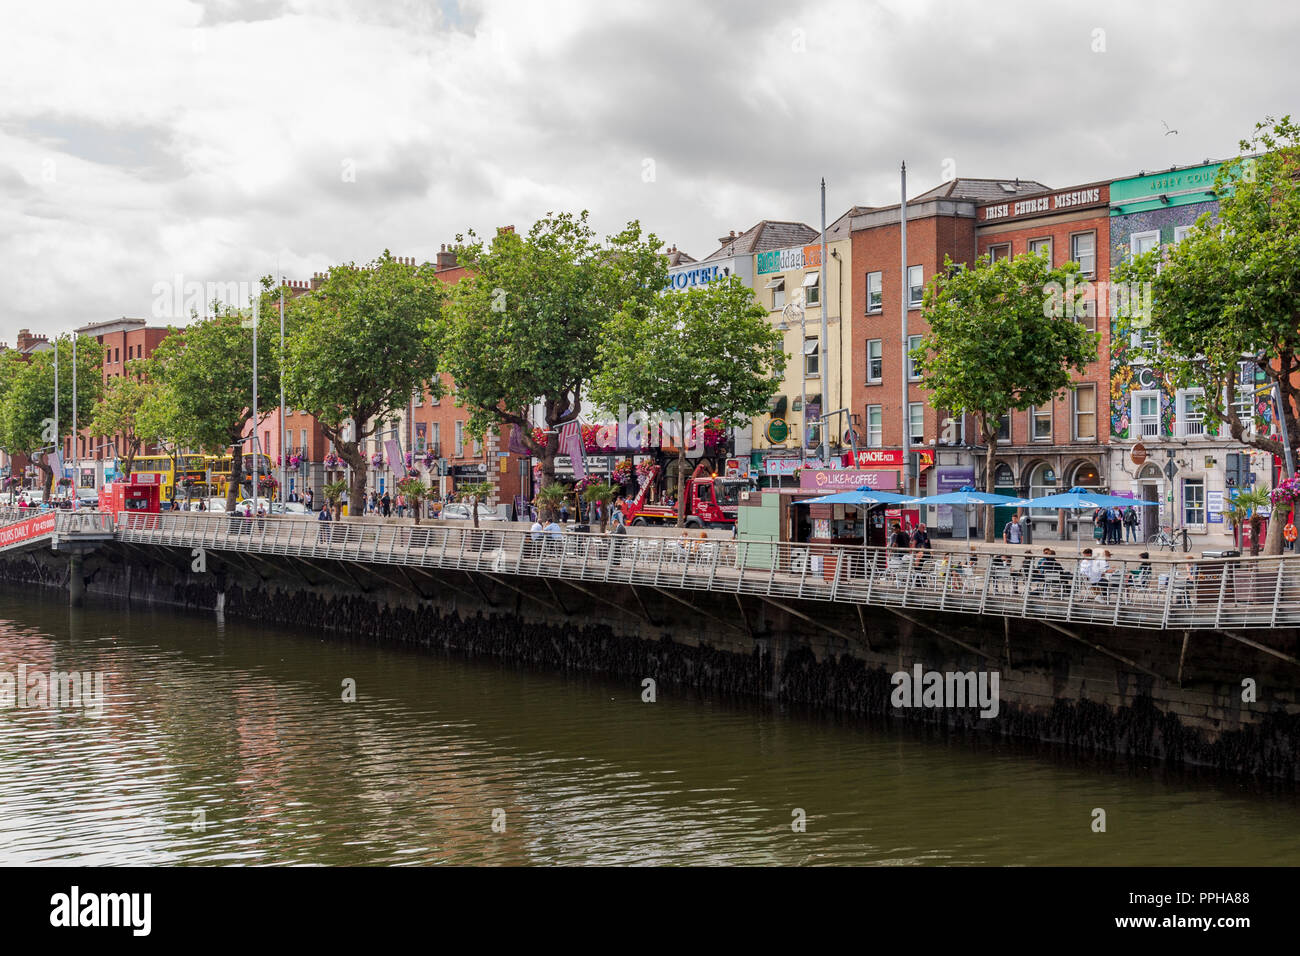 Dublin, Ireland -- July 9, 2018.  Colorful shops line the sidewalks on the banks of the River Liffey in Dublin, Ireland. - Stock Image